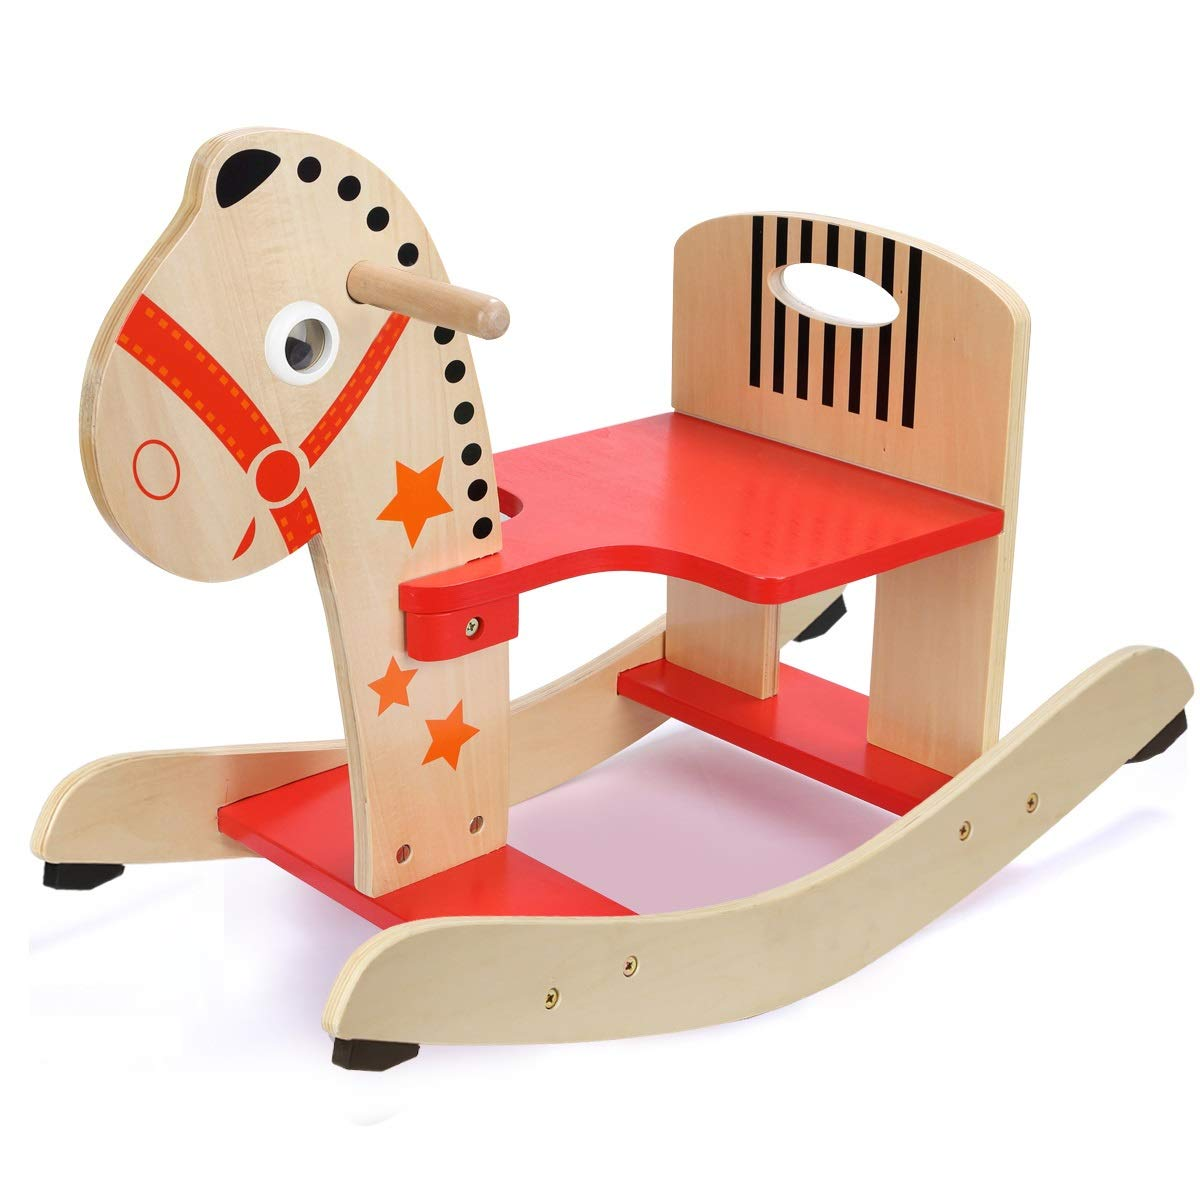 YULAN Small Trojan Child Shake Horse 1 Year Old Gift Baby Wooden Rocking Chair Baby Indoor Toy